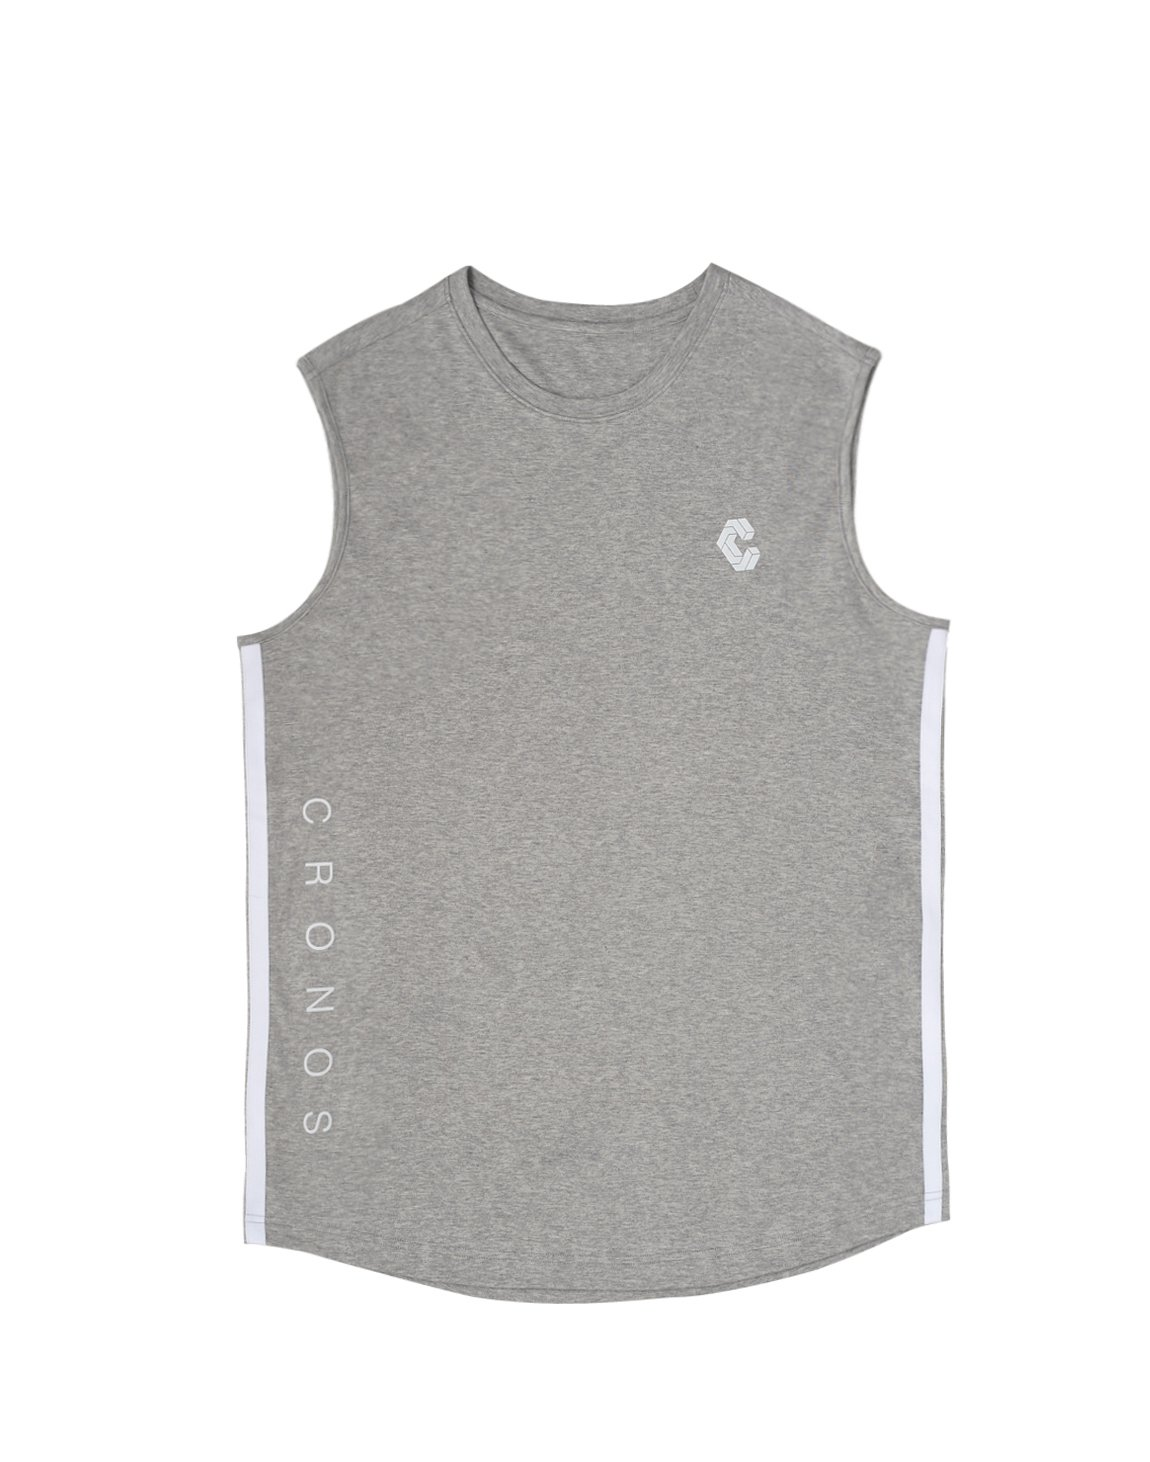 <img class='new_mark_img1' src='https://img.shop-pro.jp/img/new/icons55.gif' style='border:none;display:inline;margin:0px;padding:0px;width:auto;' />CRONOS NEW 2STRIPE TANK TOP【T.GRAY】